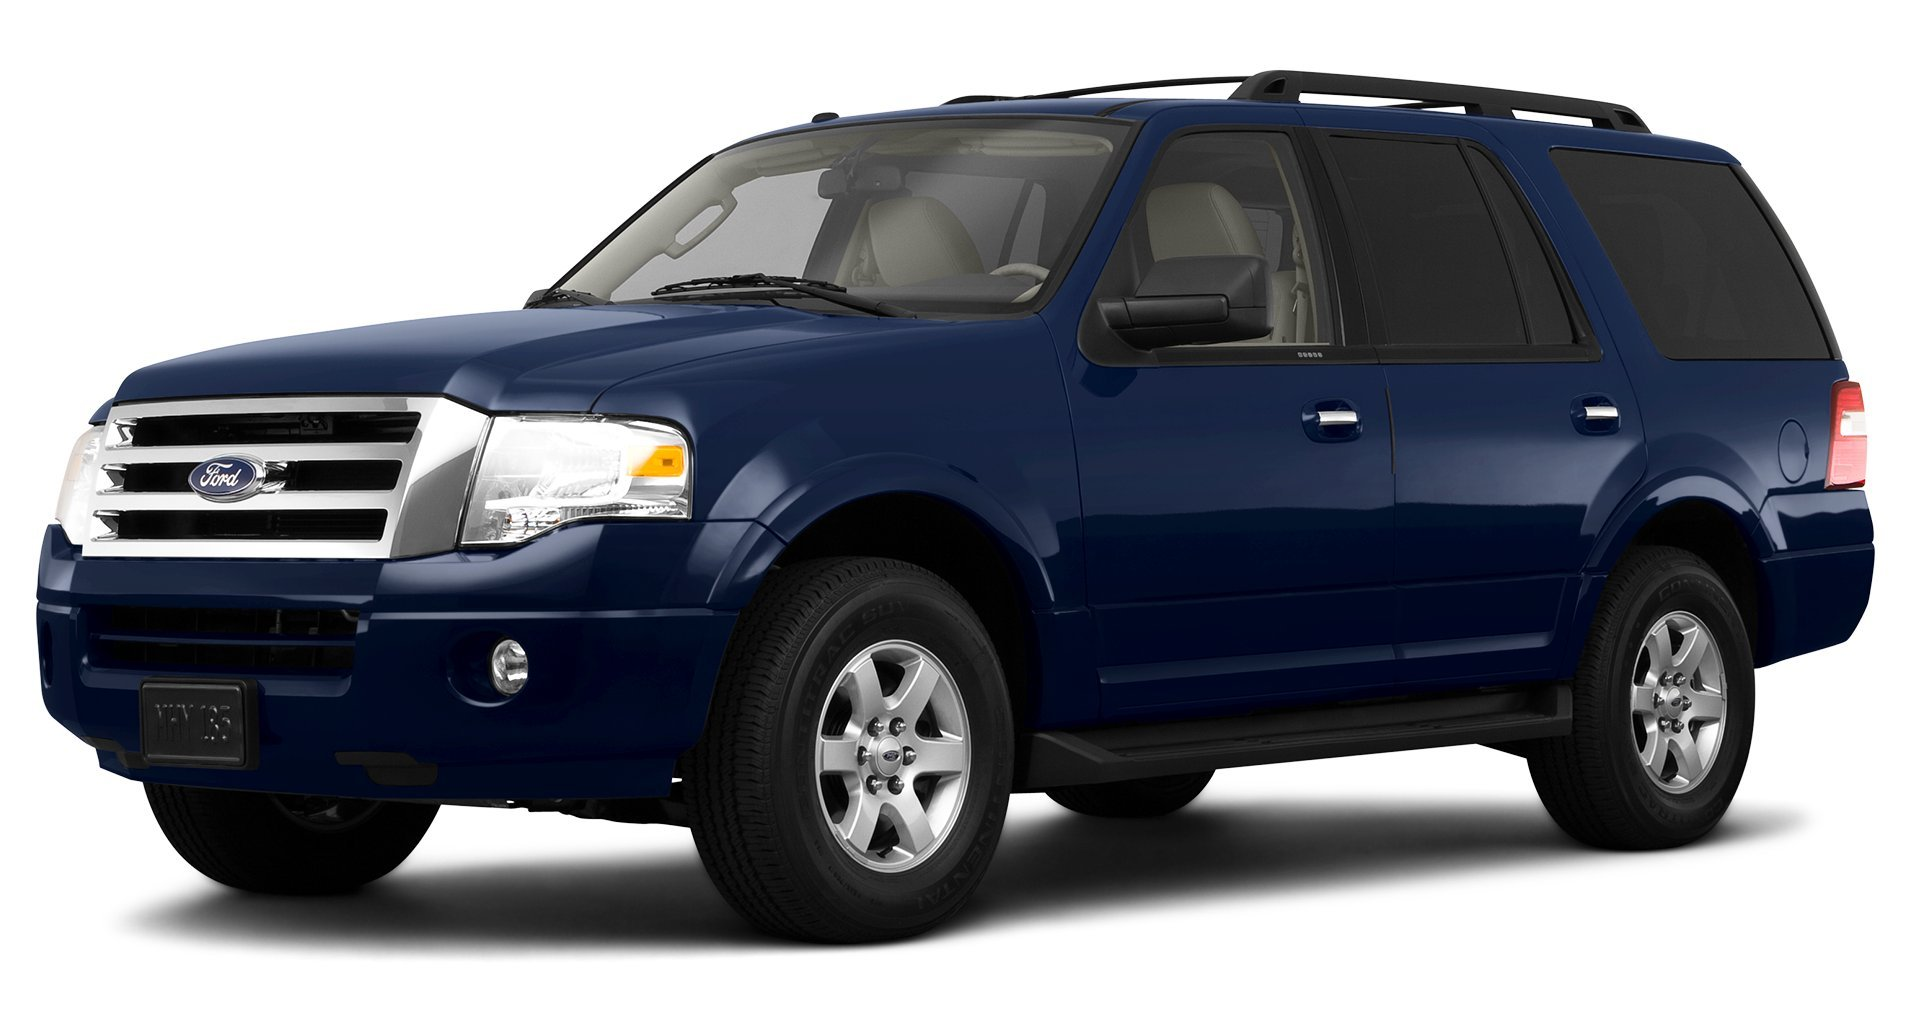 2010 toyota 4runner reviews images and specs vehicles. Black Bedroom Furniture Sets. Home Design Ideas